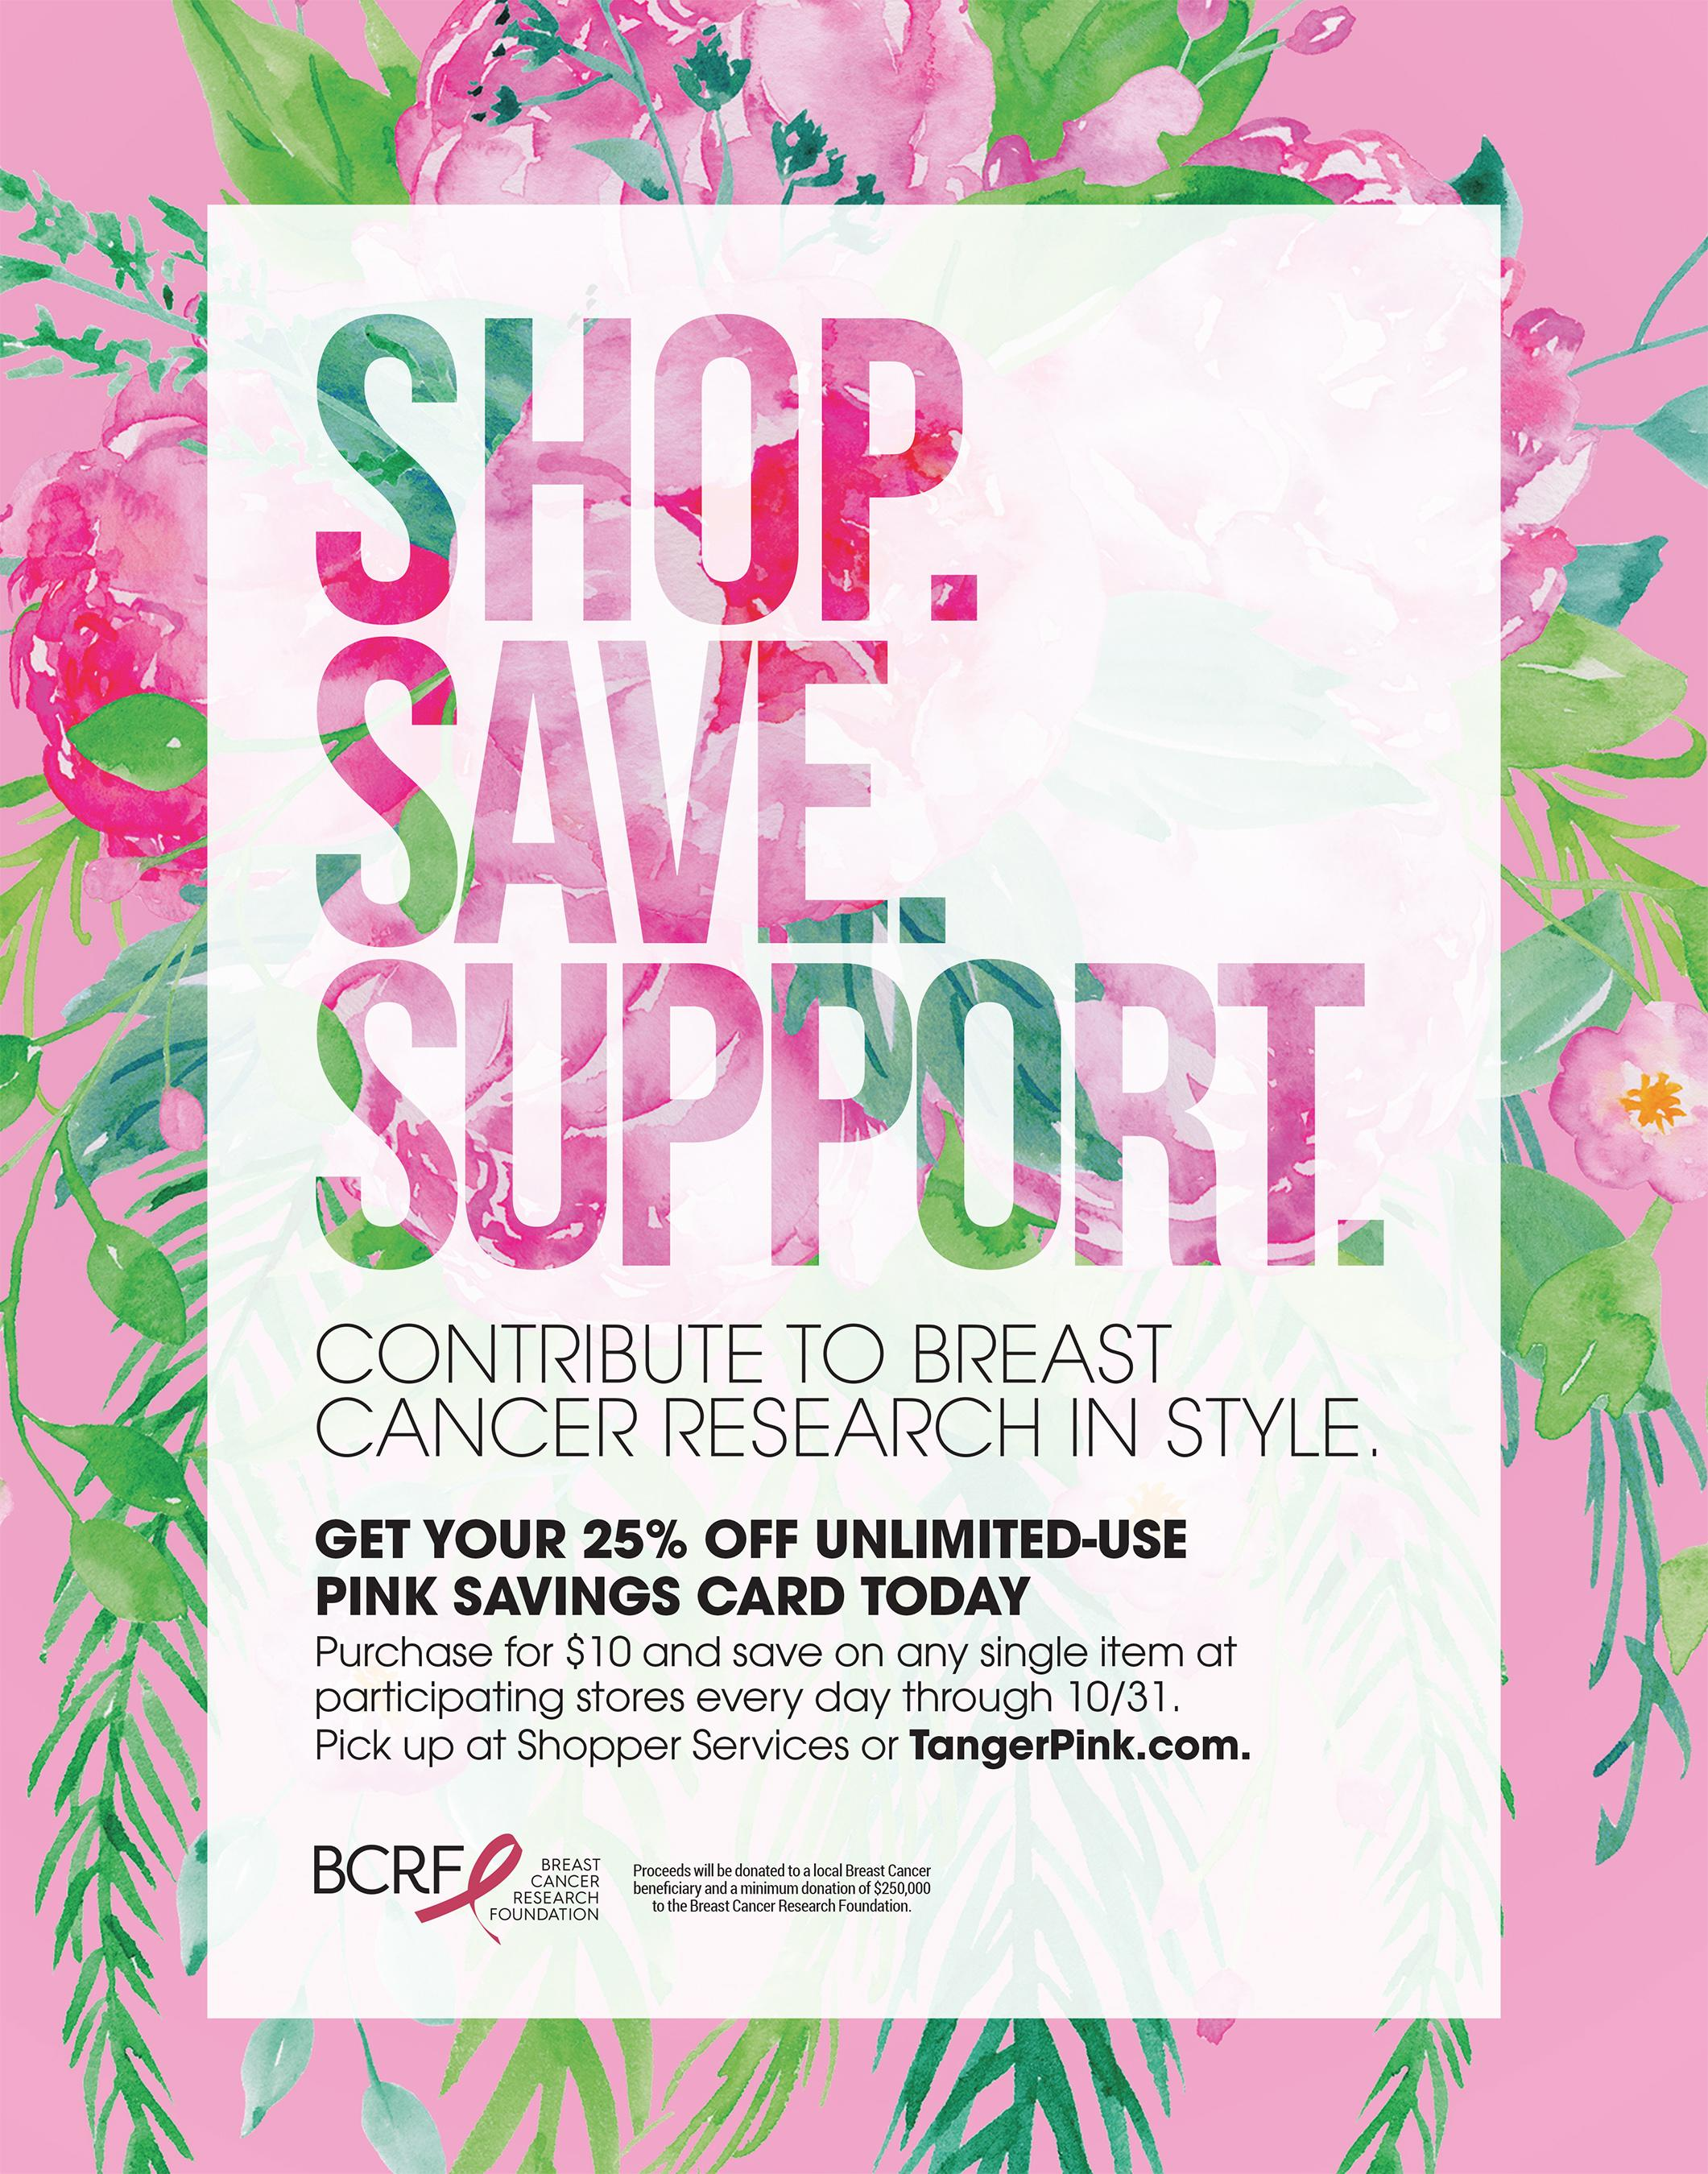 a18a95bb0 Tanger Outlets Launches 25th Annual Tanger Pink Campaign In Support Of The  Ongoing Fight Against Breast Cancer